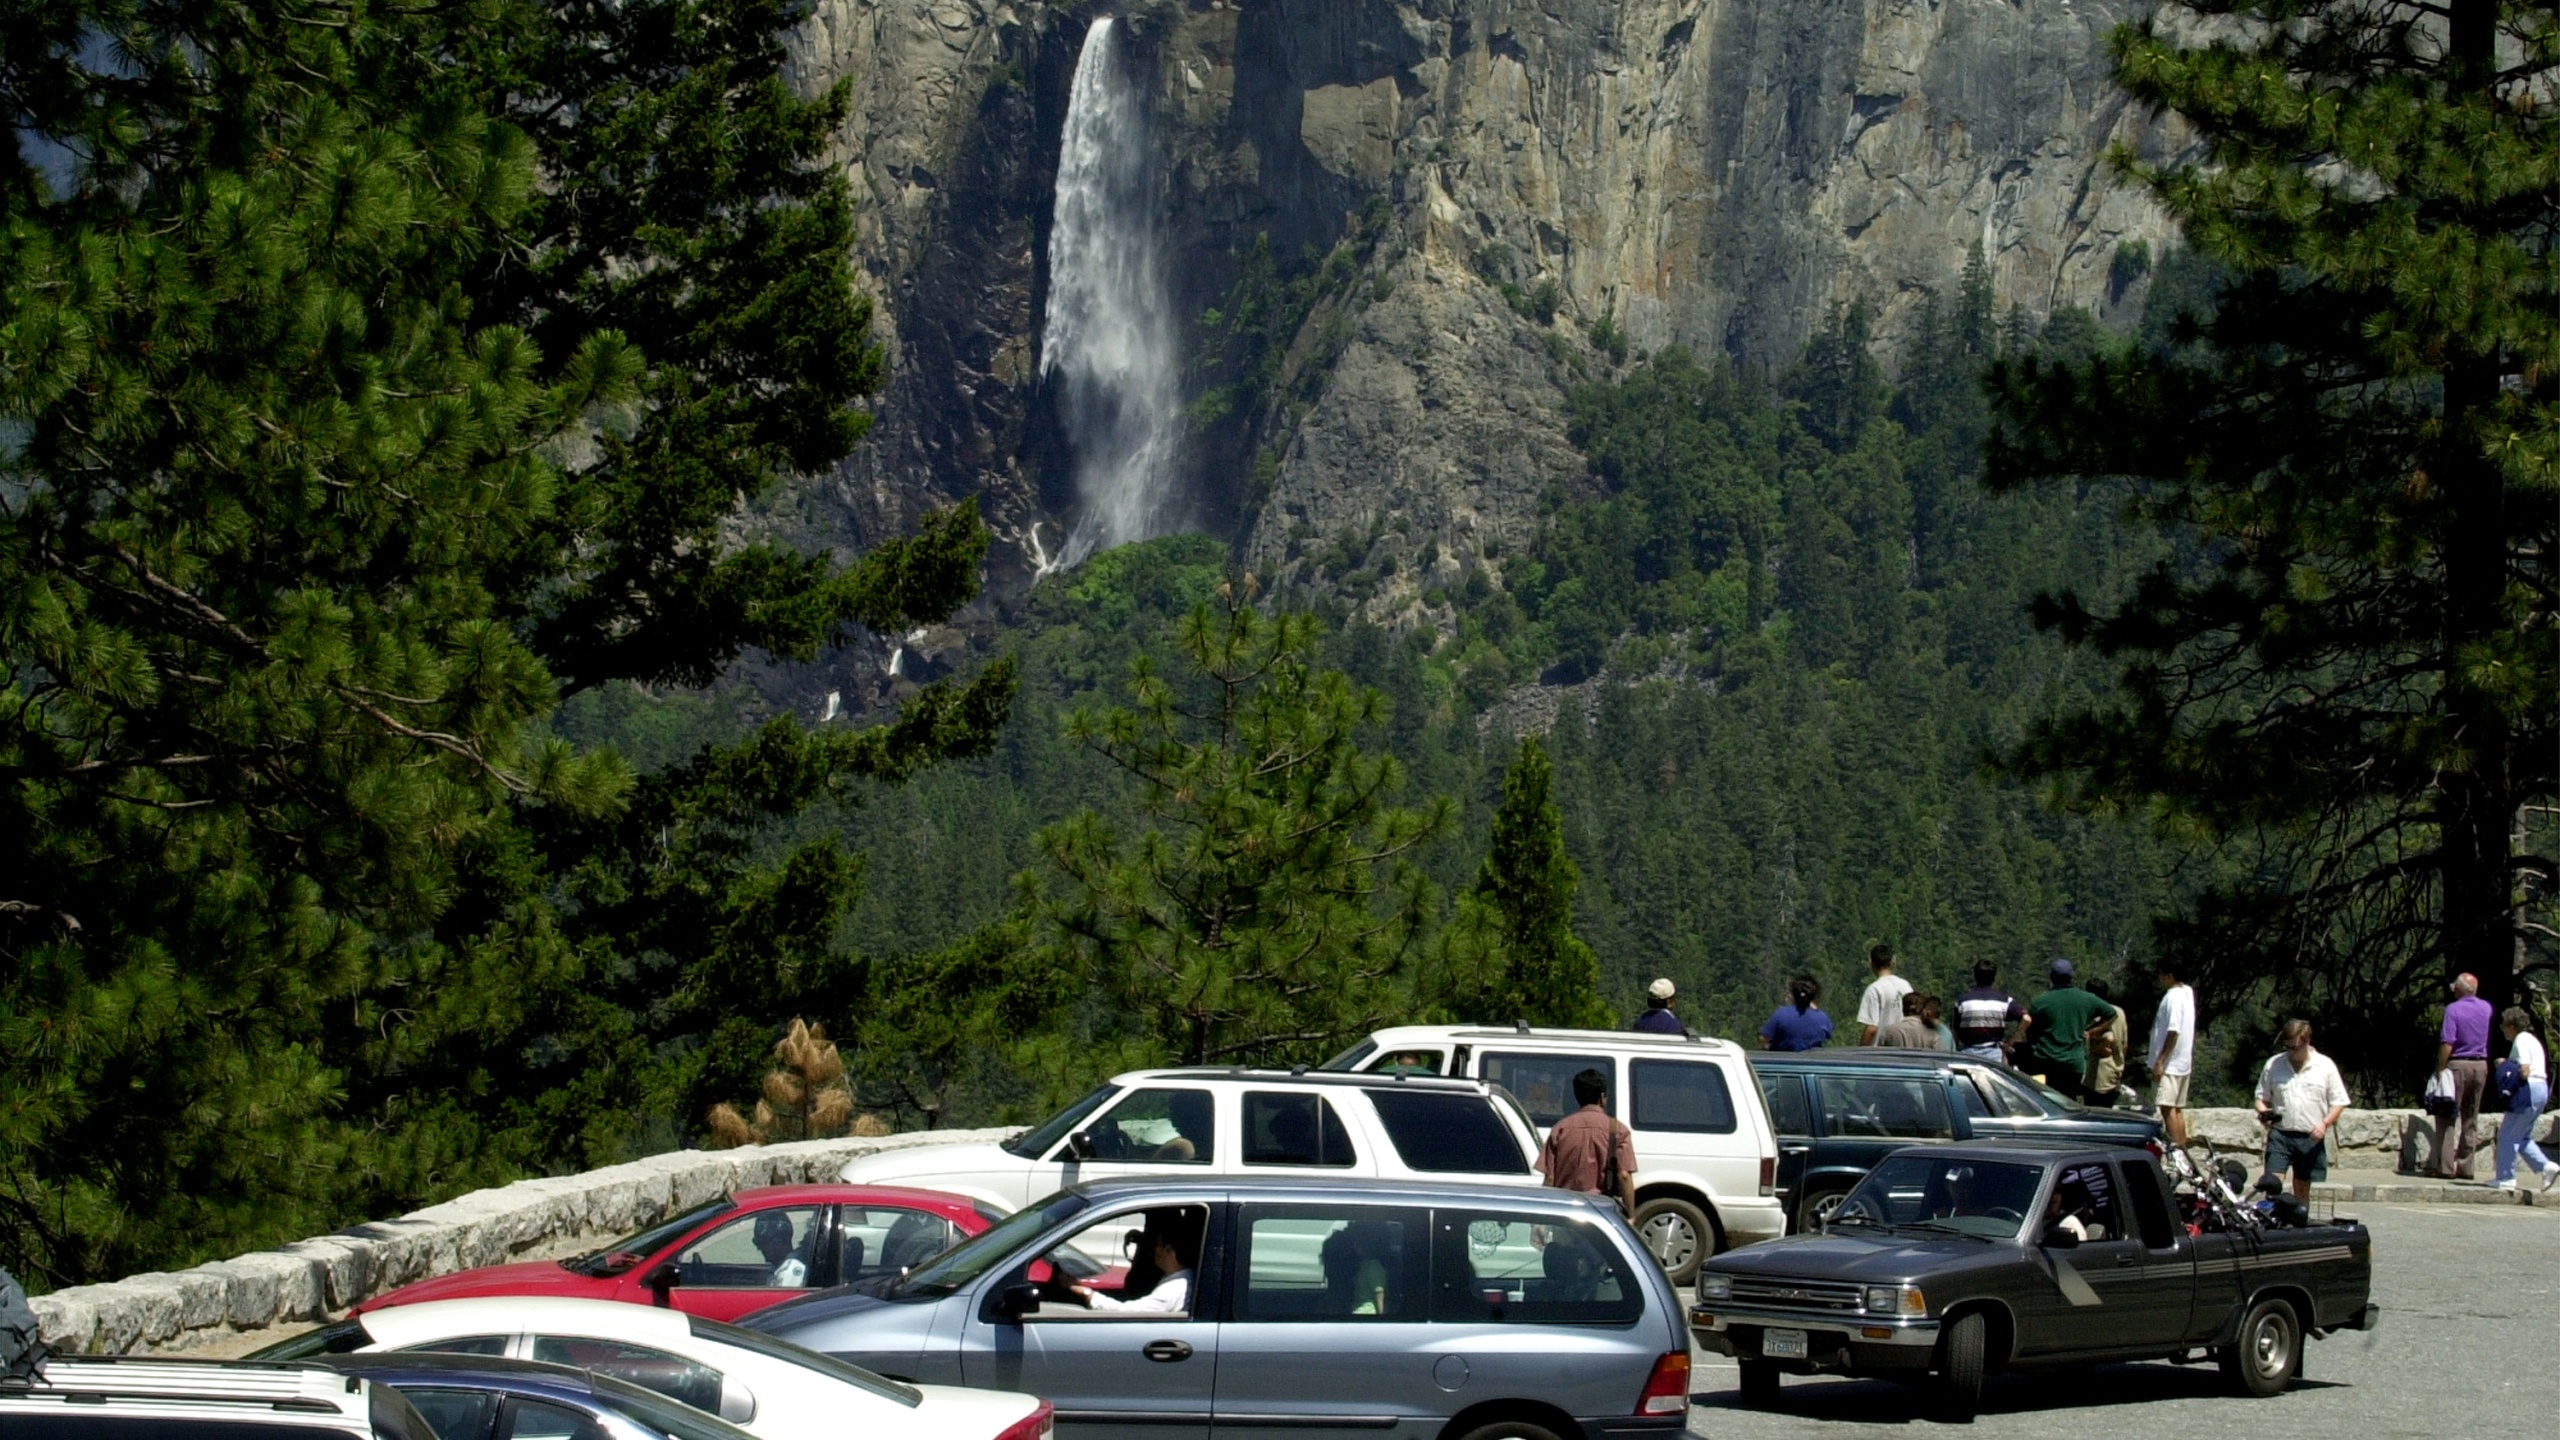 Bridalveil Falls is seen from a packed parking lot on June 16, 2000, in Yosemite National Park. (Credit: David McNew /Newsmakers via Getty Images)